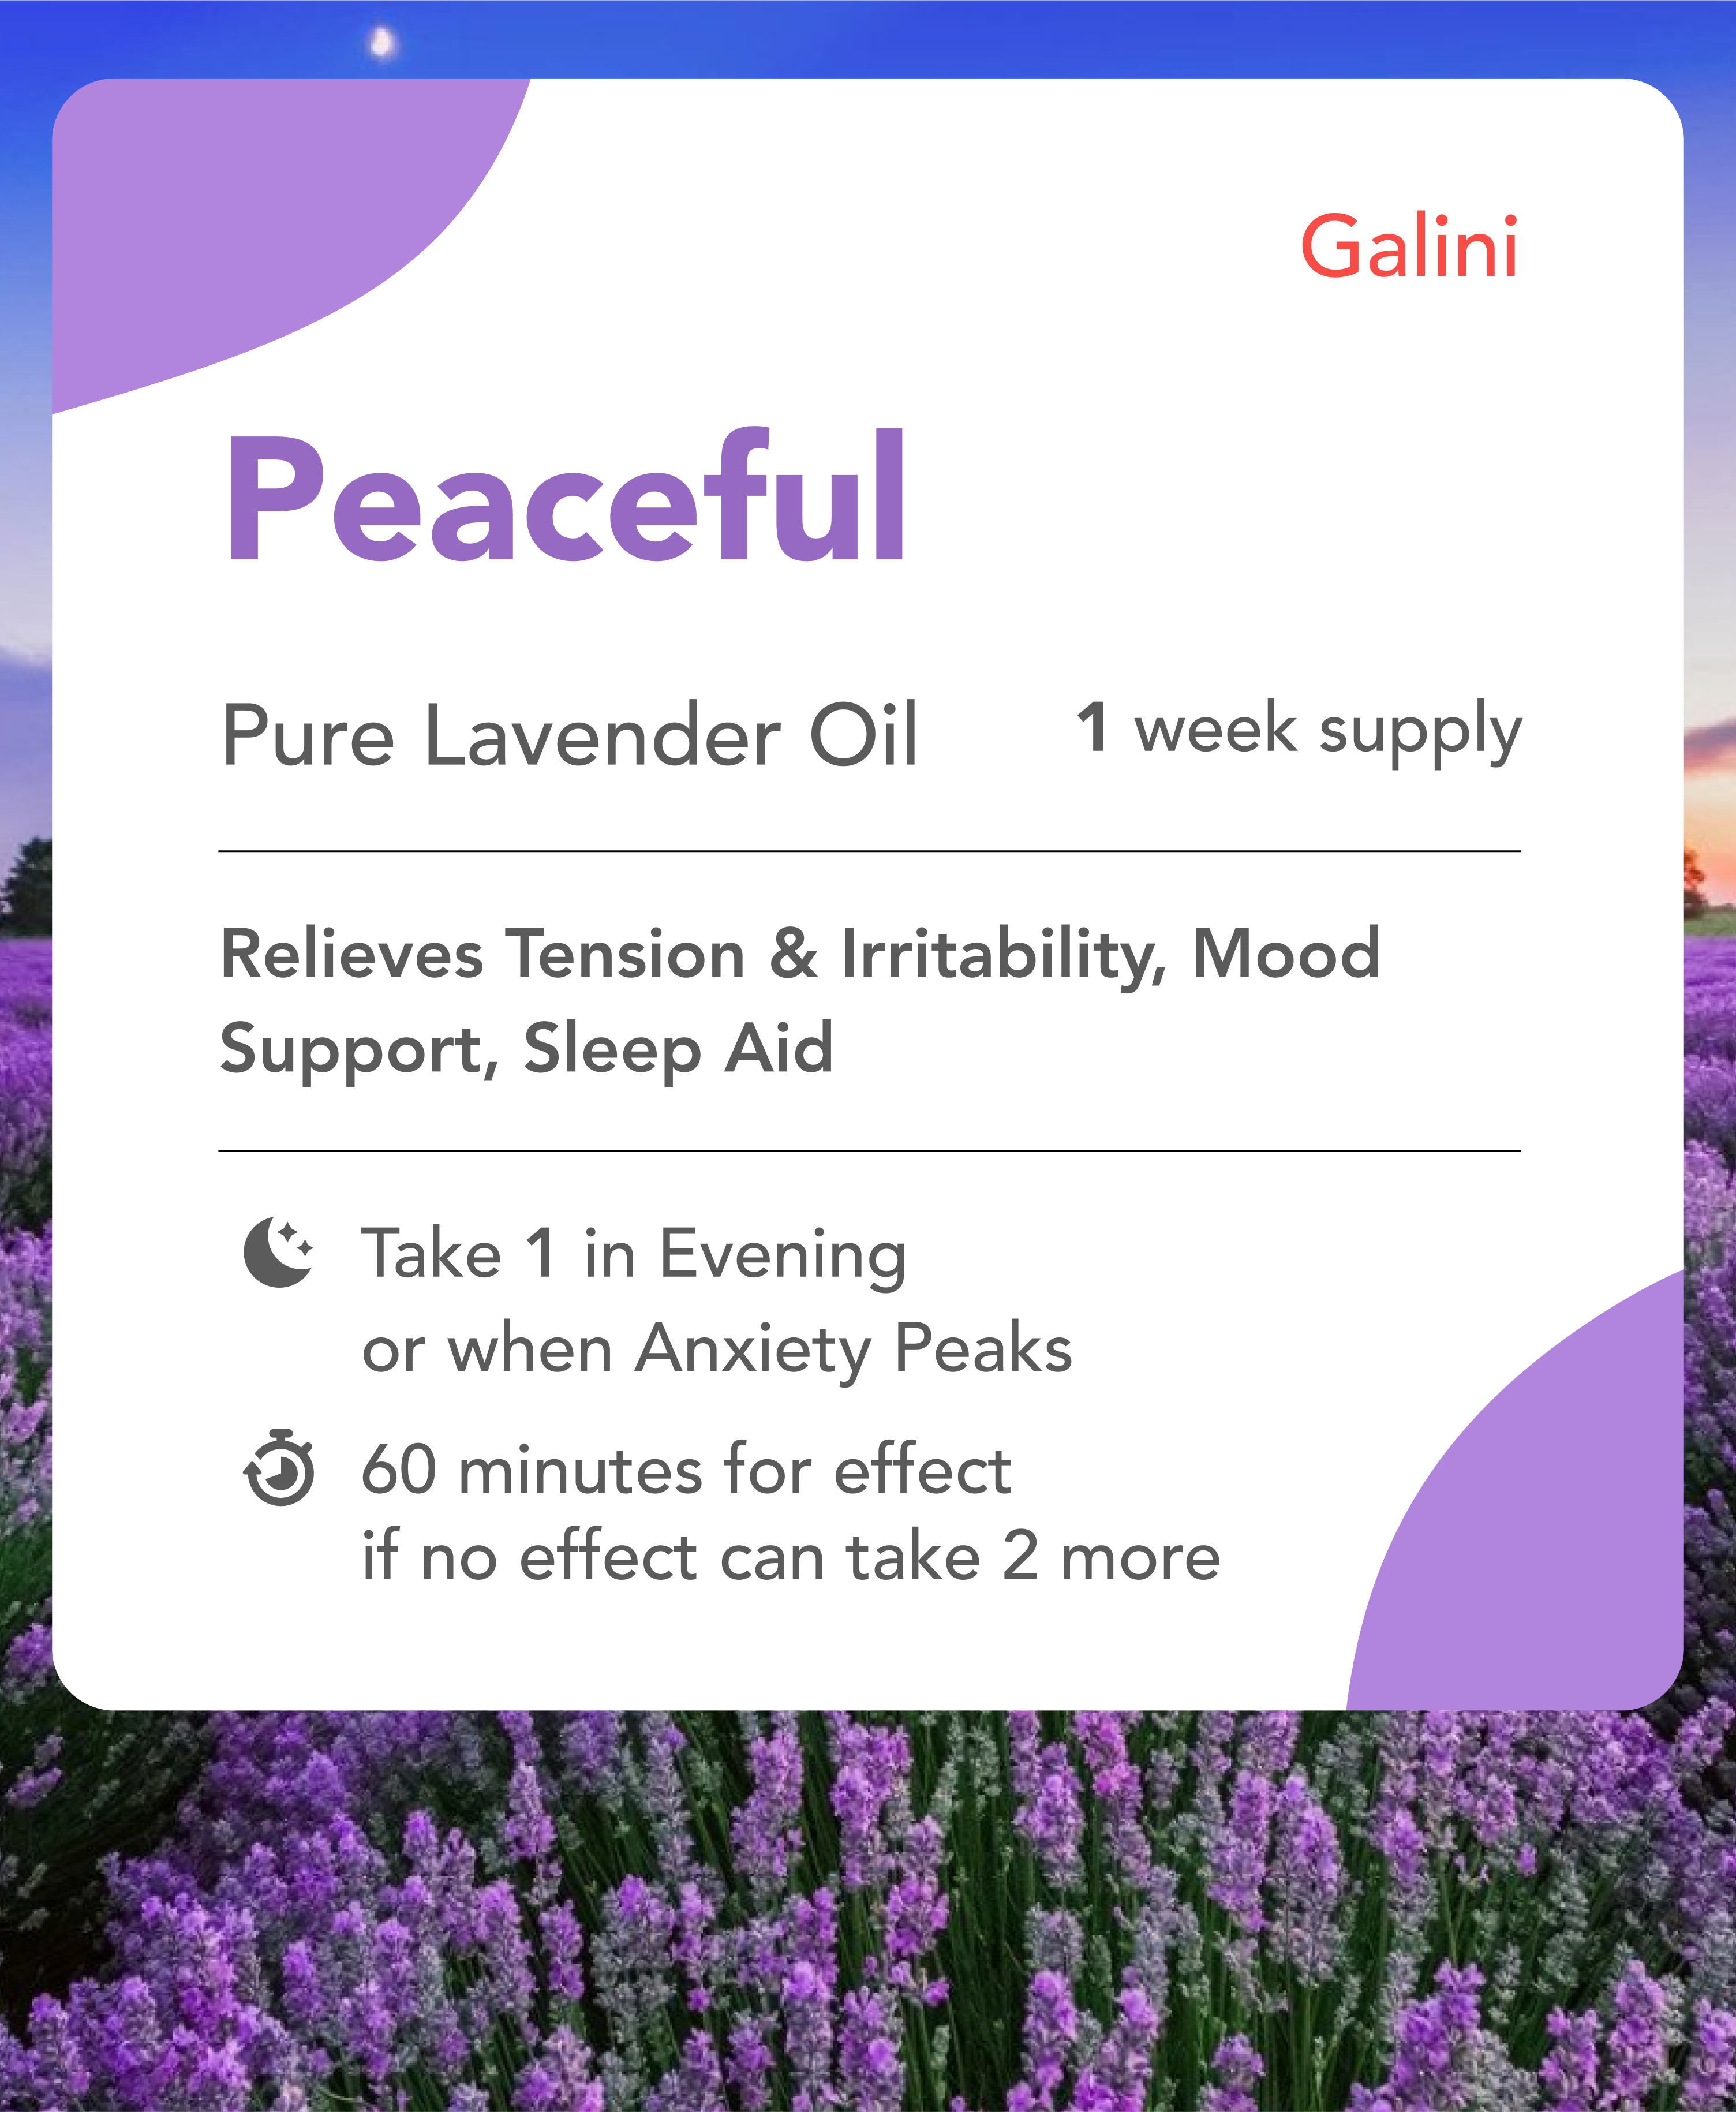 Peaceful supplement containing Lavender oil with nature background